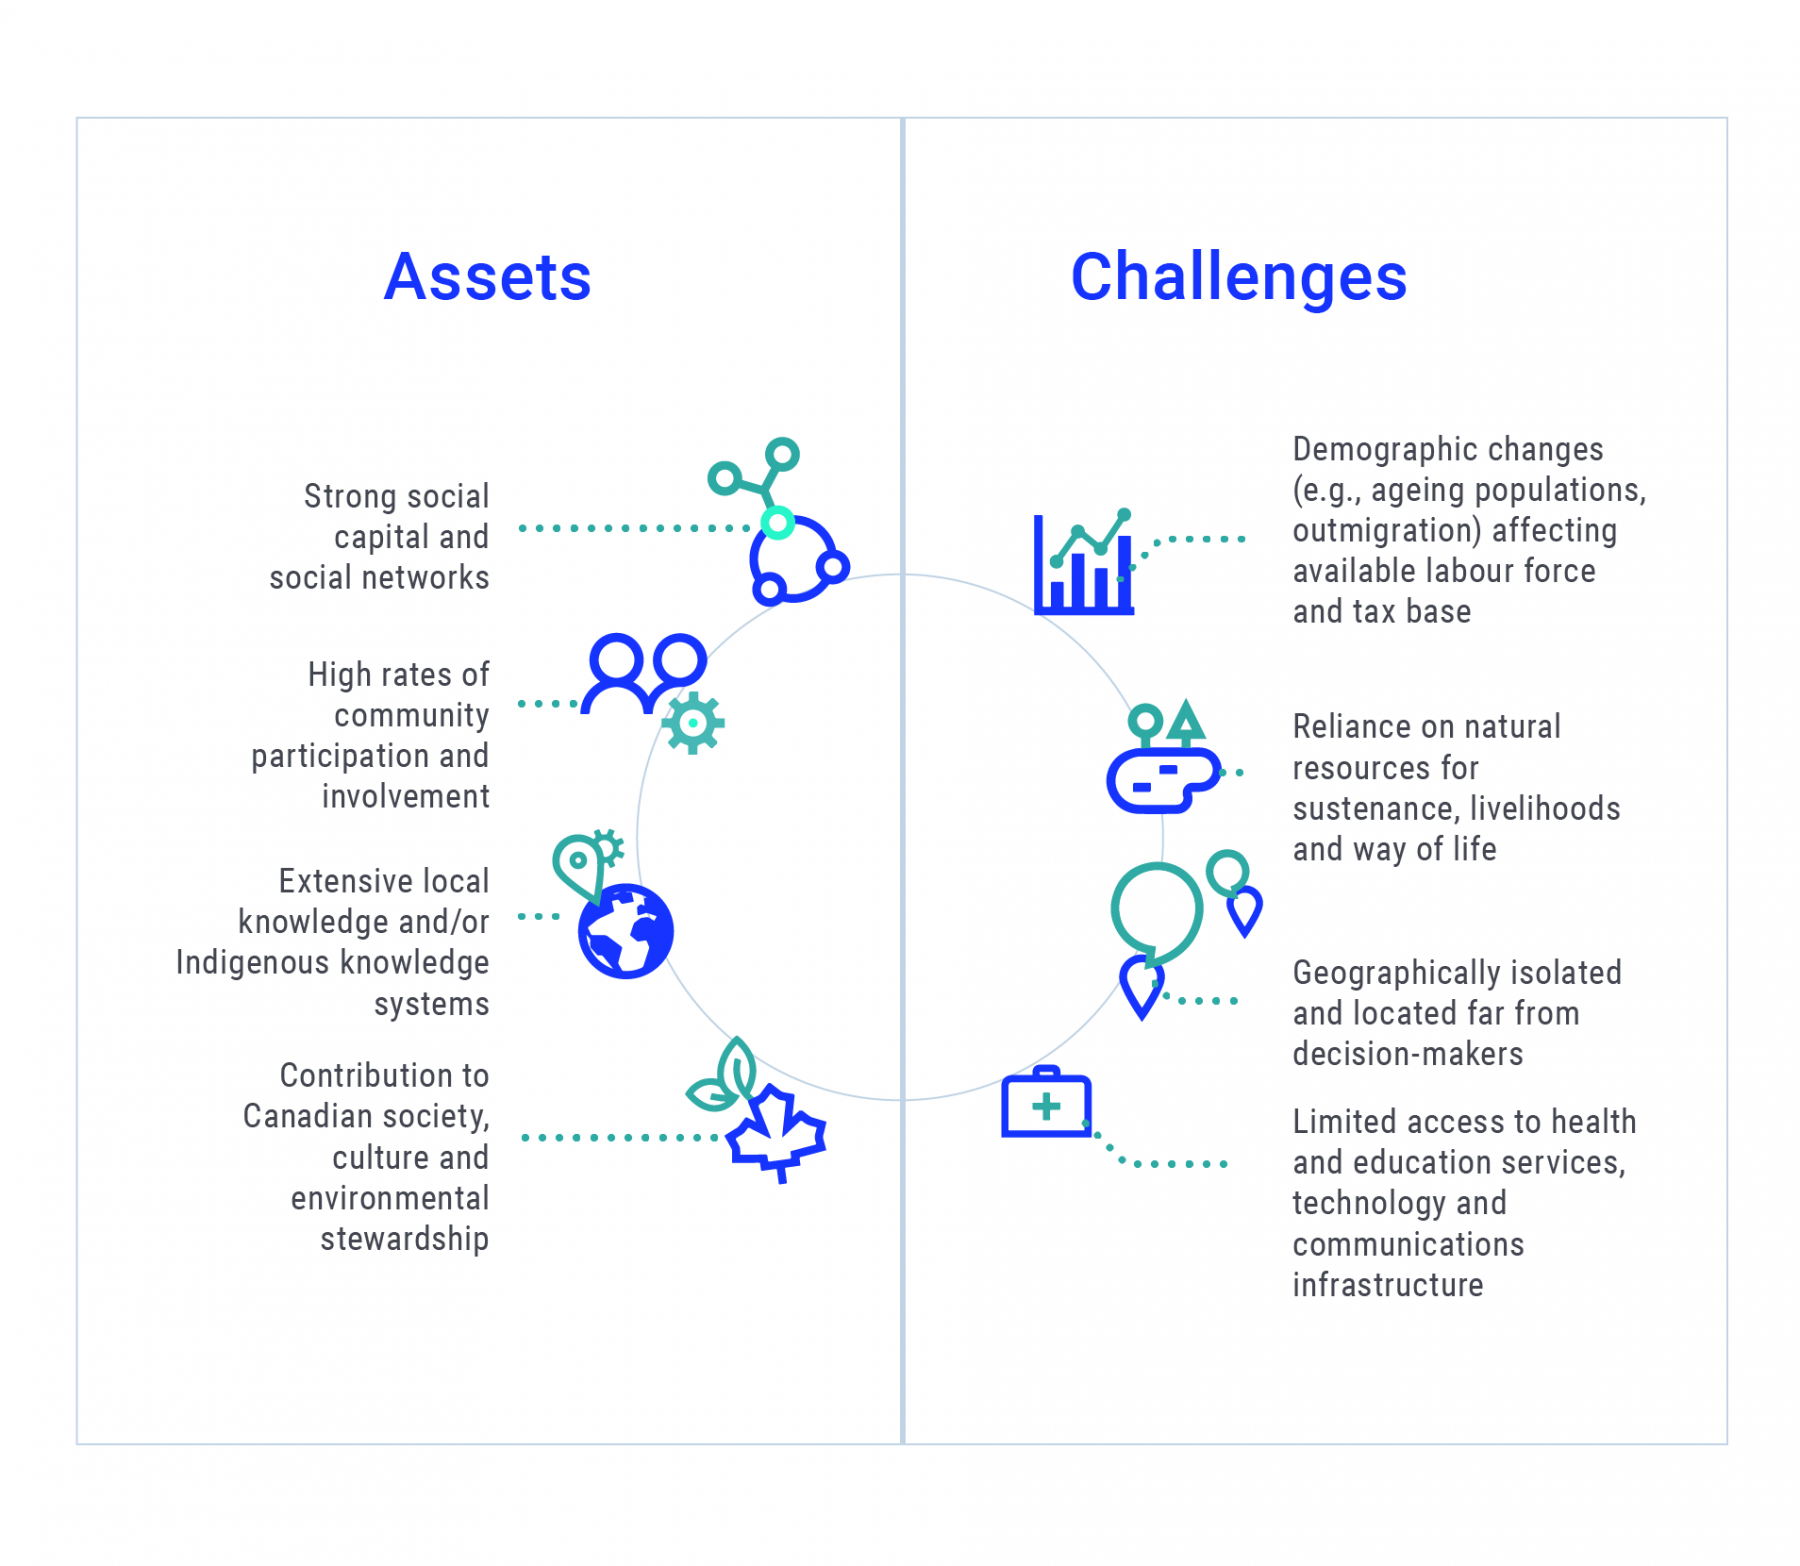 Graphic showing the summary of key assets and challenges for rural and remote communities and areas related to climate change adaptation. Assets include strong social capital and social networks; high rates of community involvement; extensive local knowledge including Indigenous Knowledge systems; and, contribution to Canadian society, culture and environmental stewardship. Challenges include demographic changes affecting local work force and tax base; heavy reliance on natural resources; geographical isolation; and, limited access to health and education services, technology and communications infrastructure.